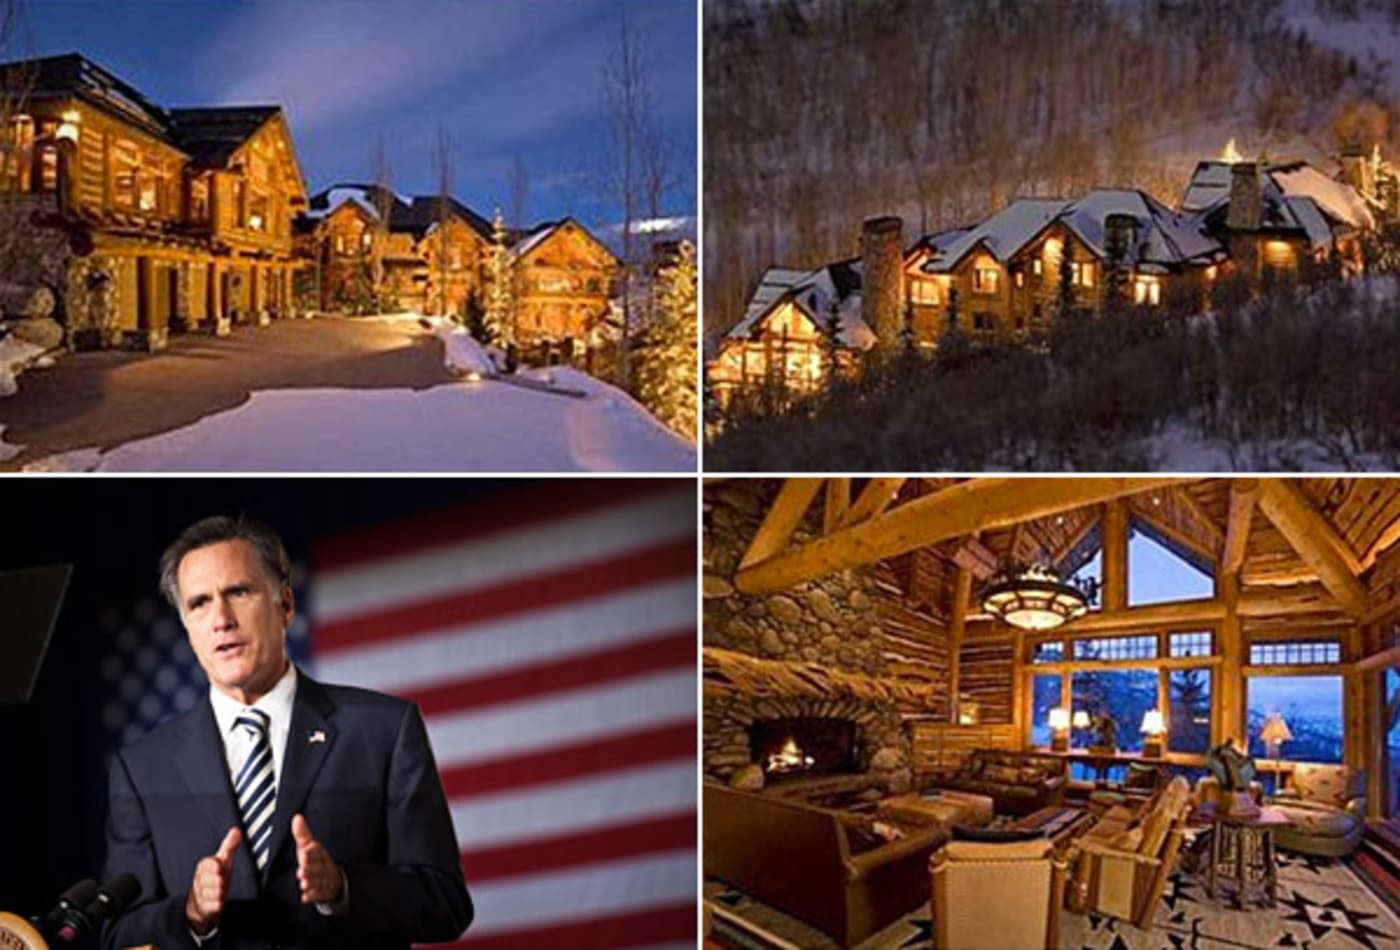 Mitt-Romney-GOP-Homes.jpg